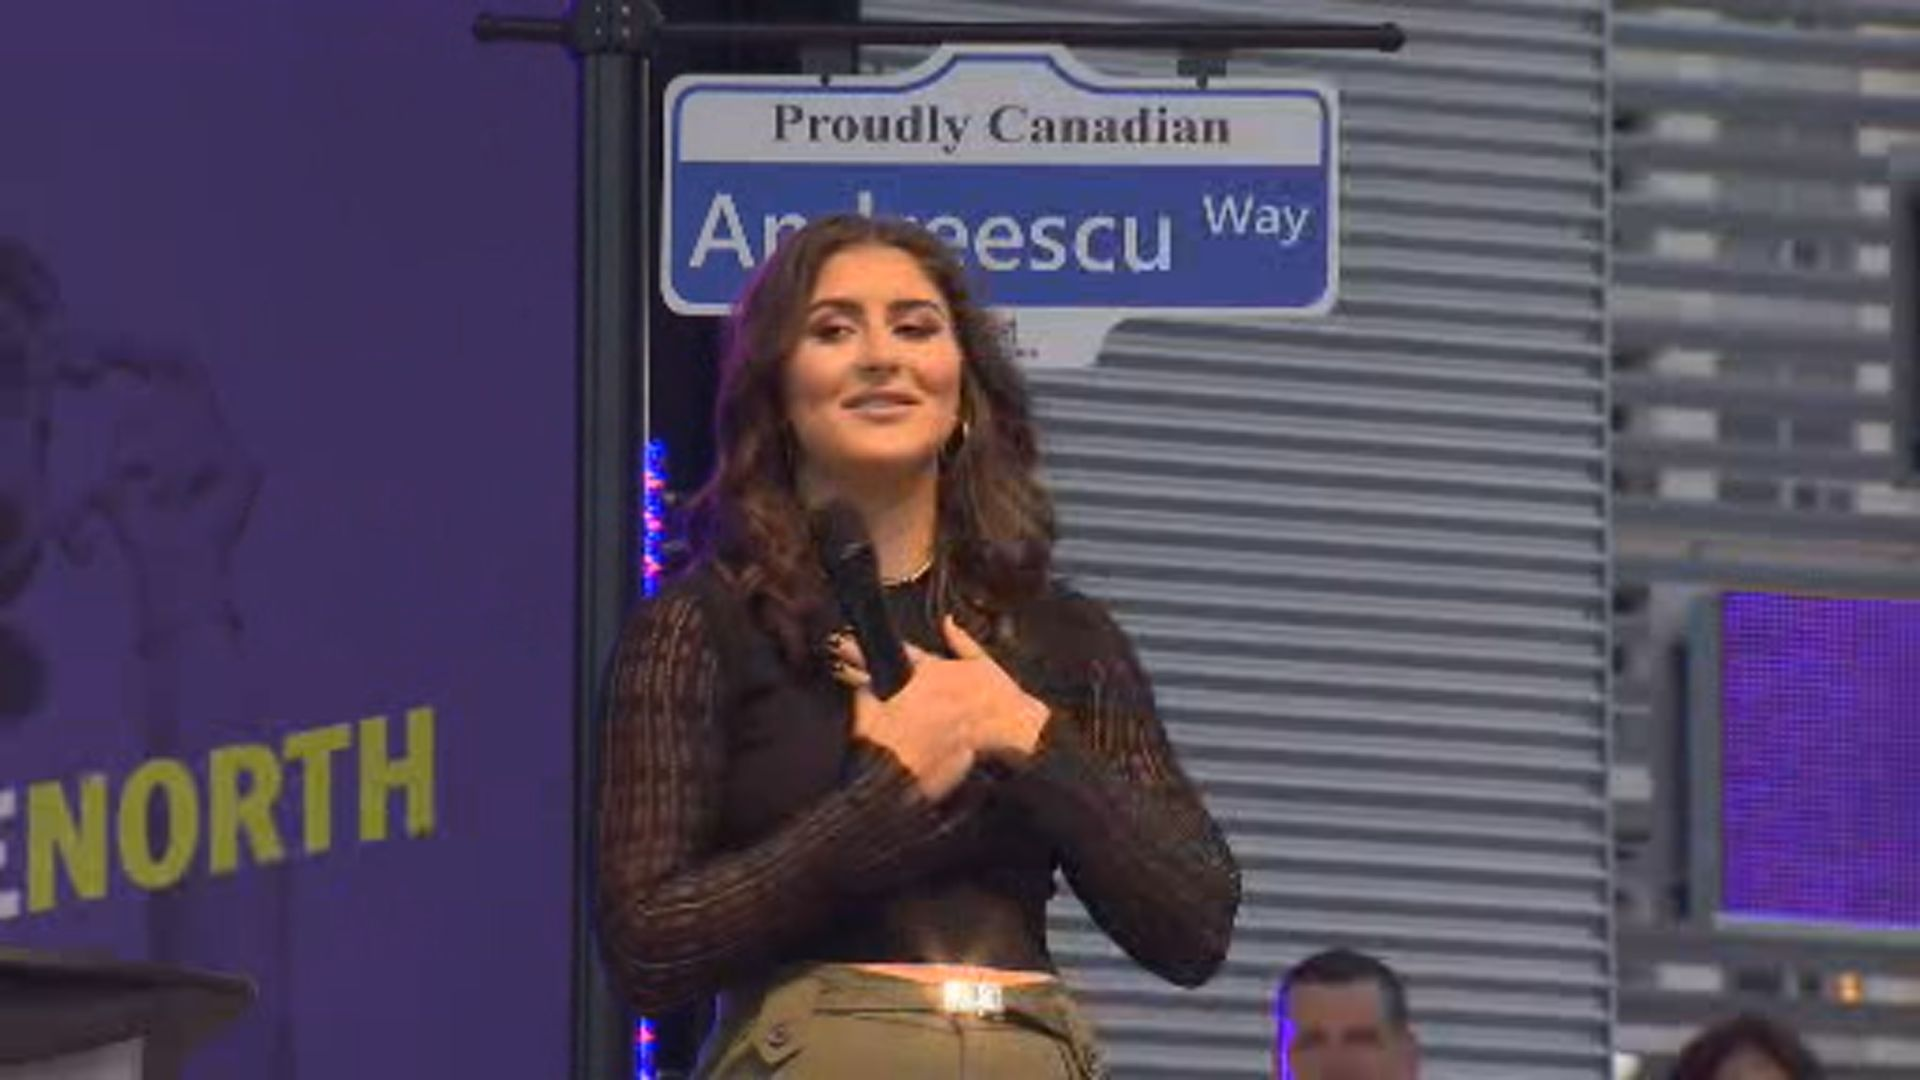 Bianca Andreescu says she never thought she'd get key to city of Mississauga, street name